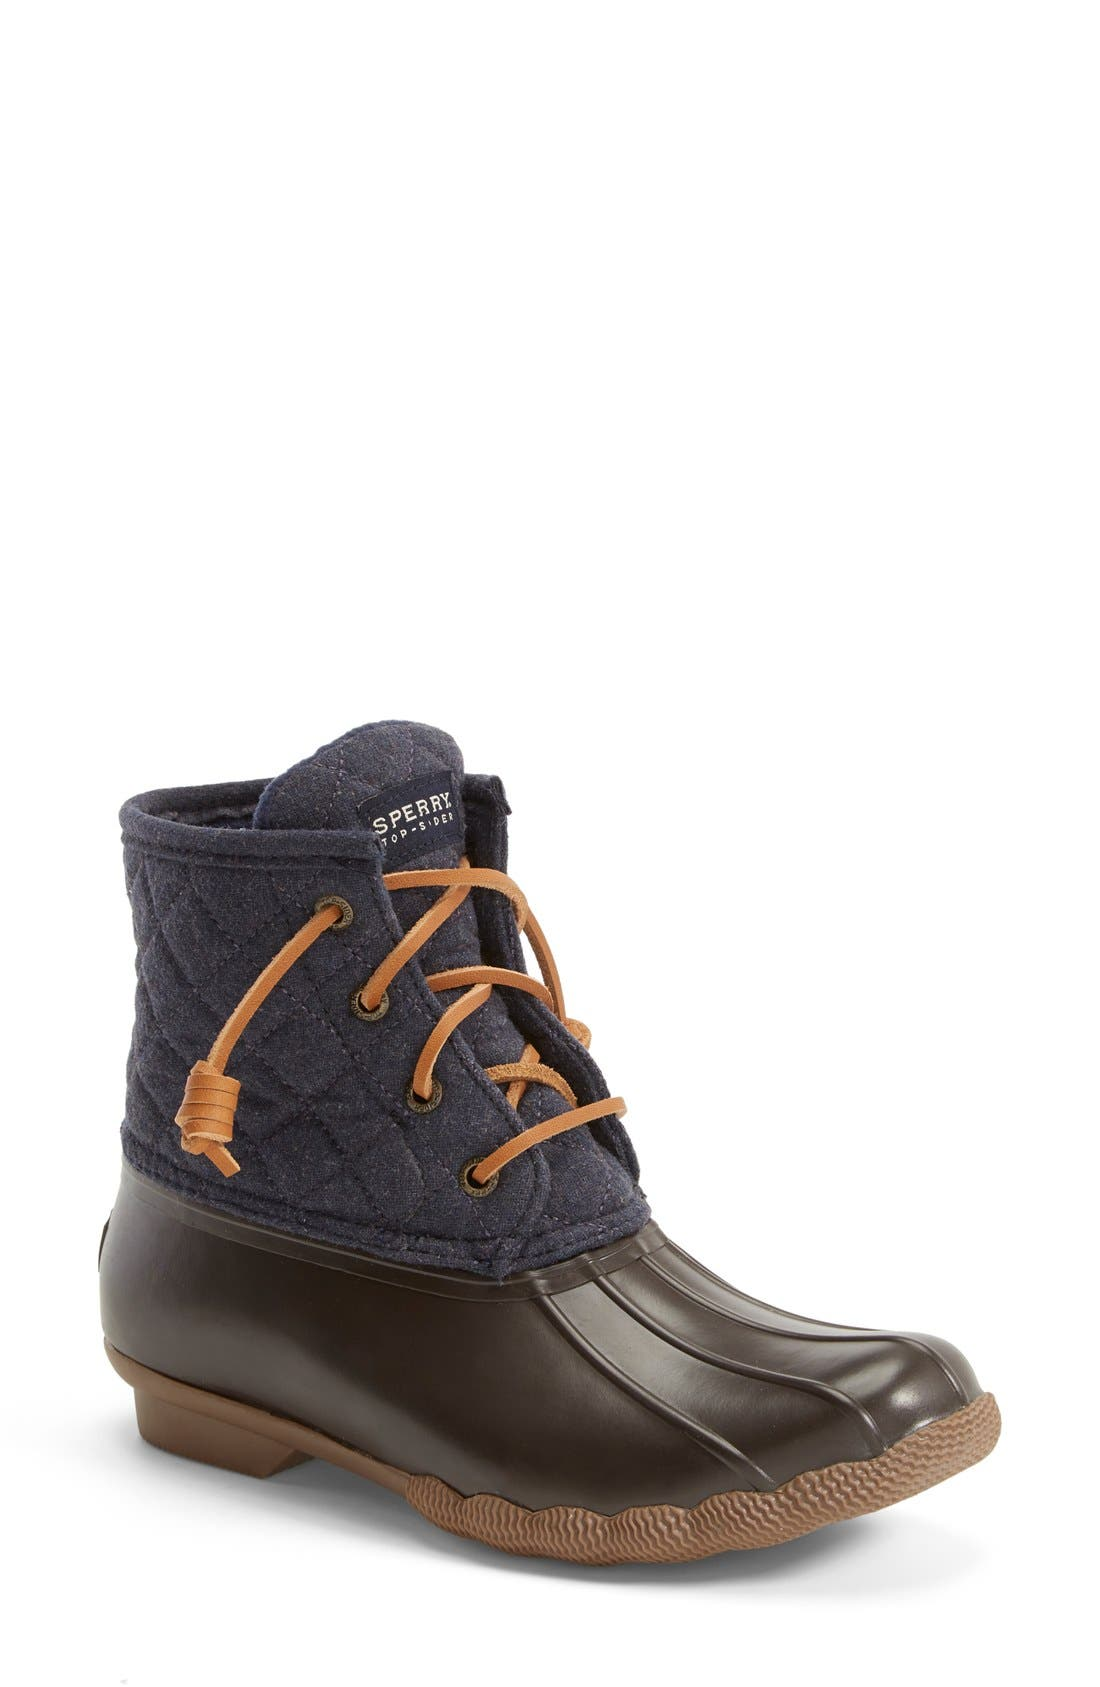 Main Image - Sperry 'Saltwater' Waterproof Rain Boot (Women) (Nordstrom Exclusive)